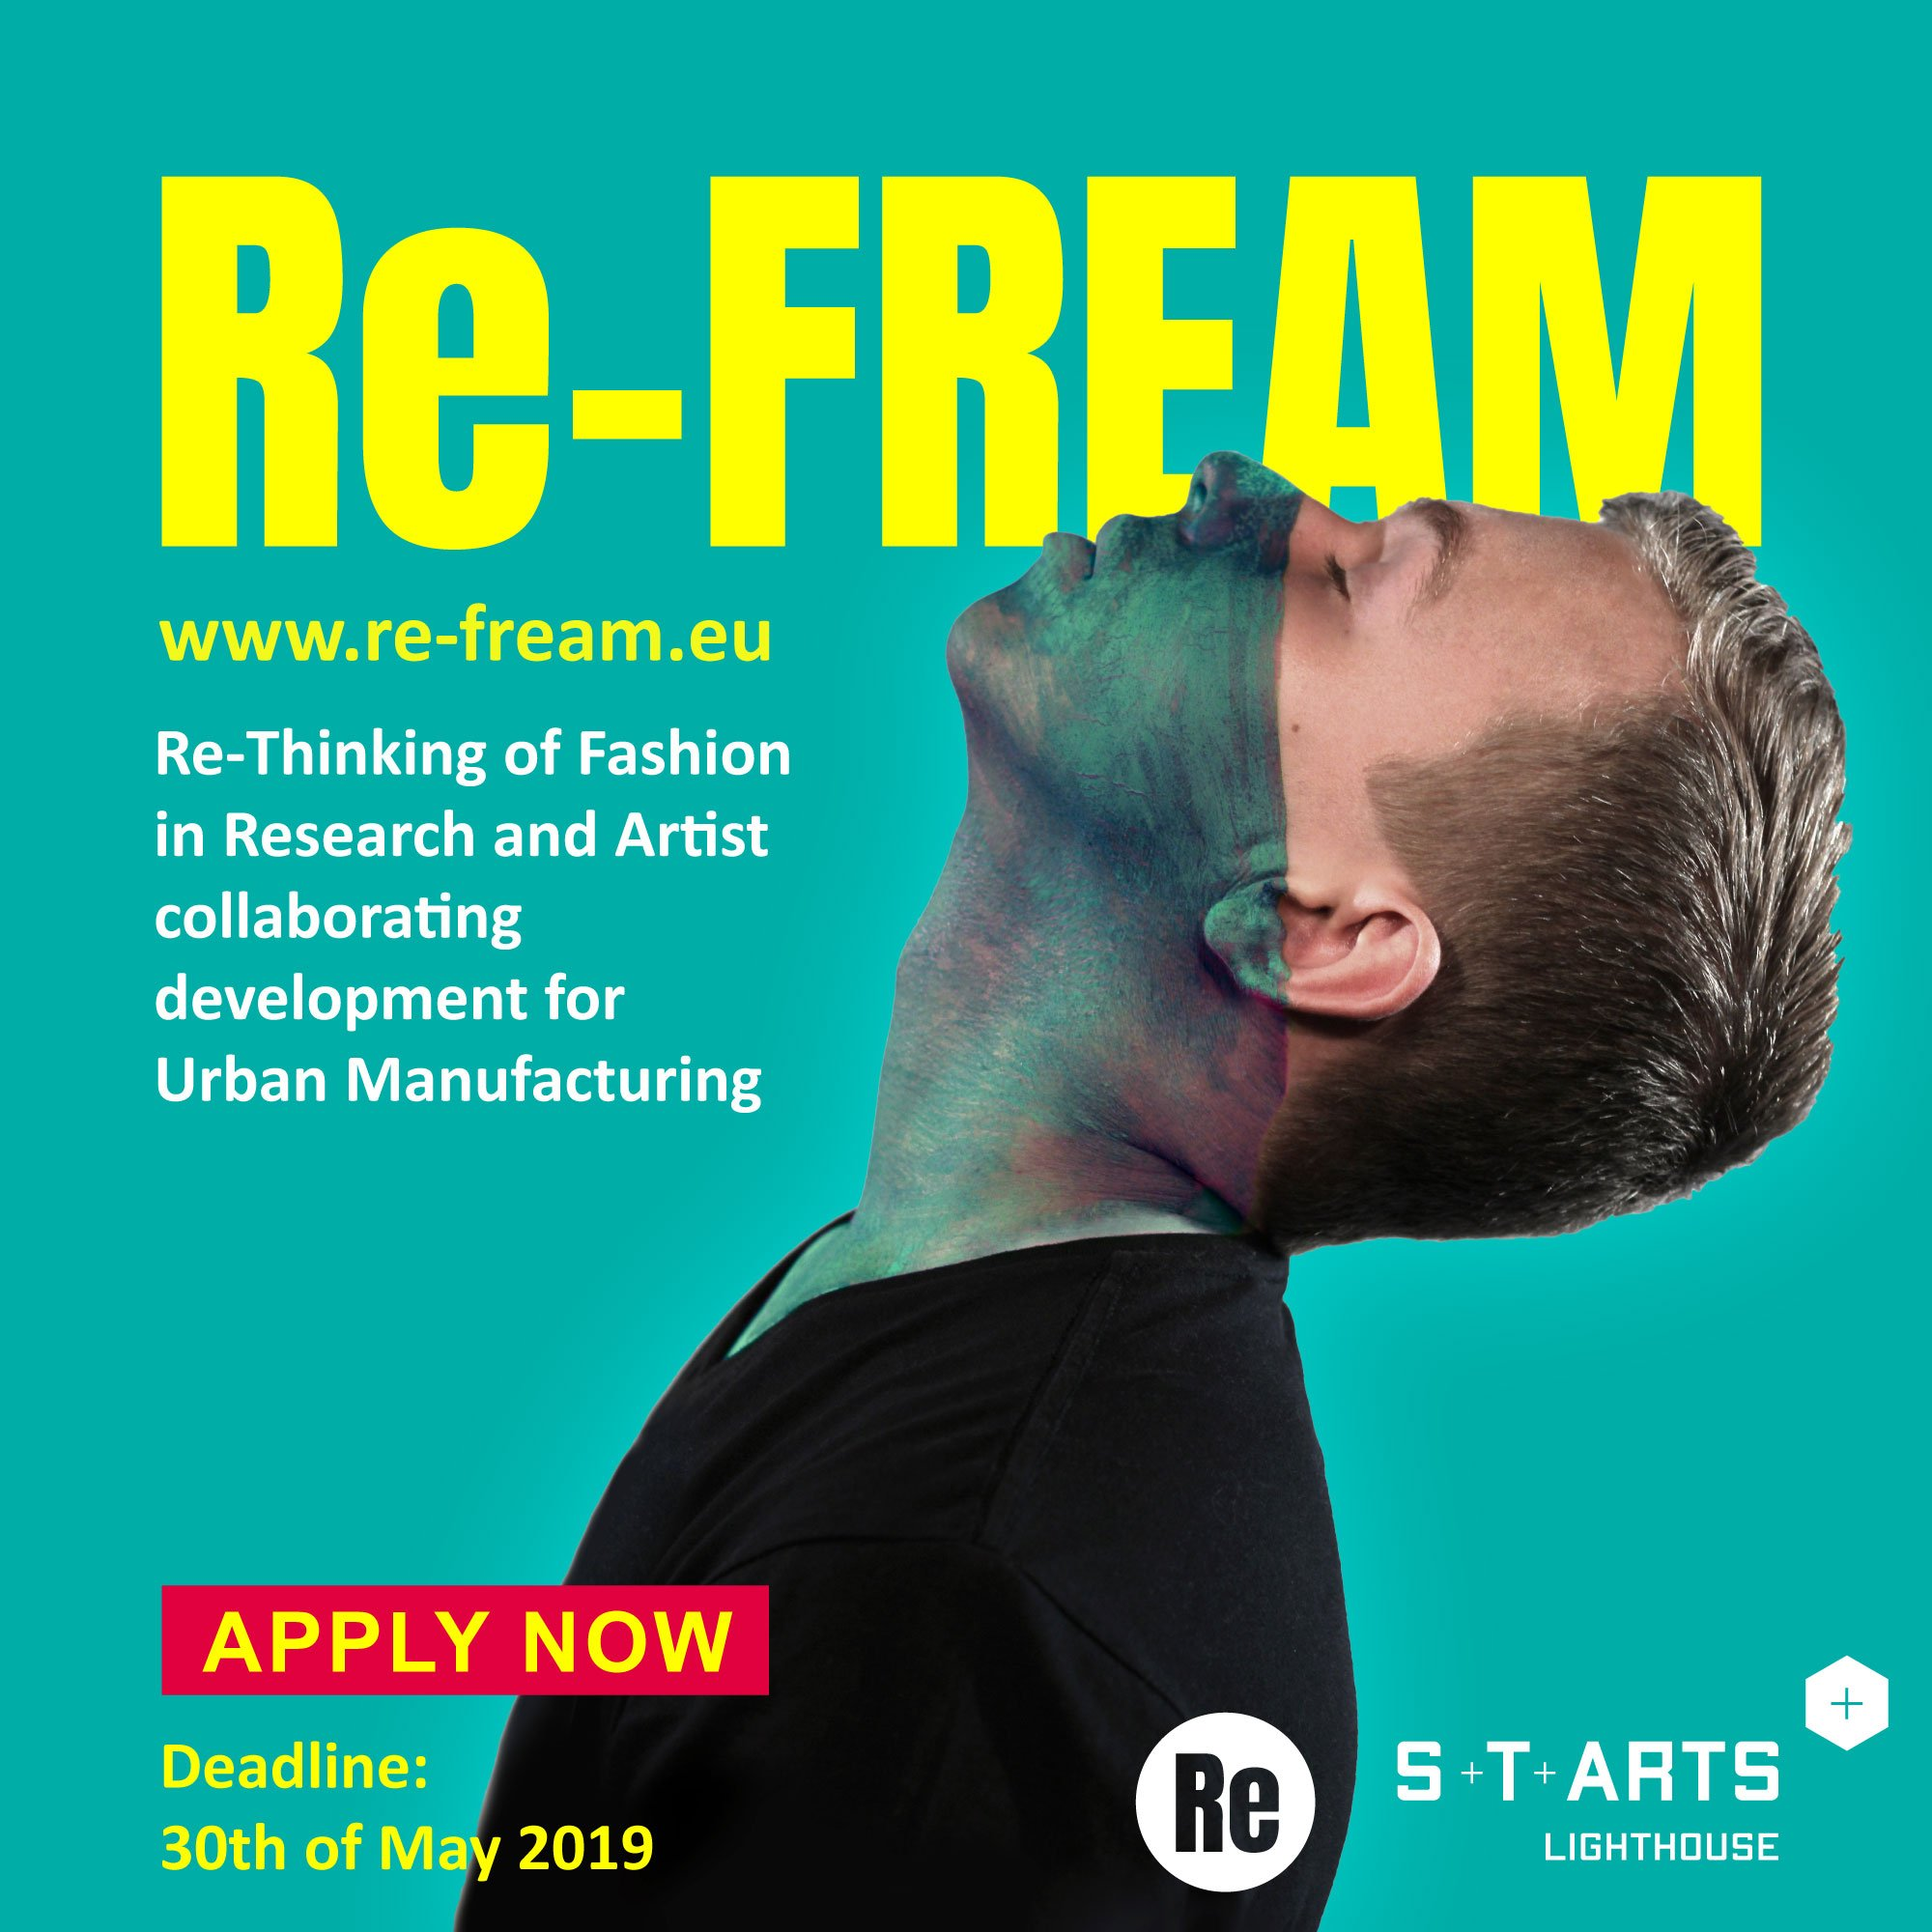 Re-Fream looks for artists and designers to Re-Think Fashion